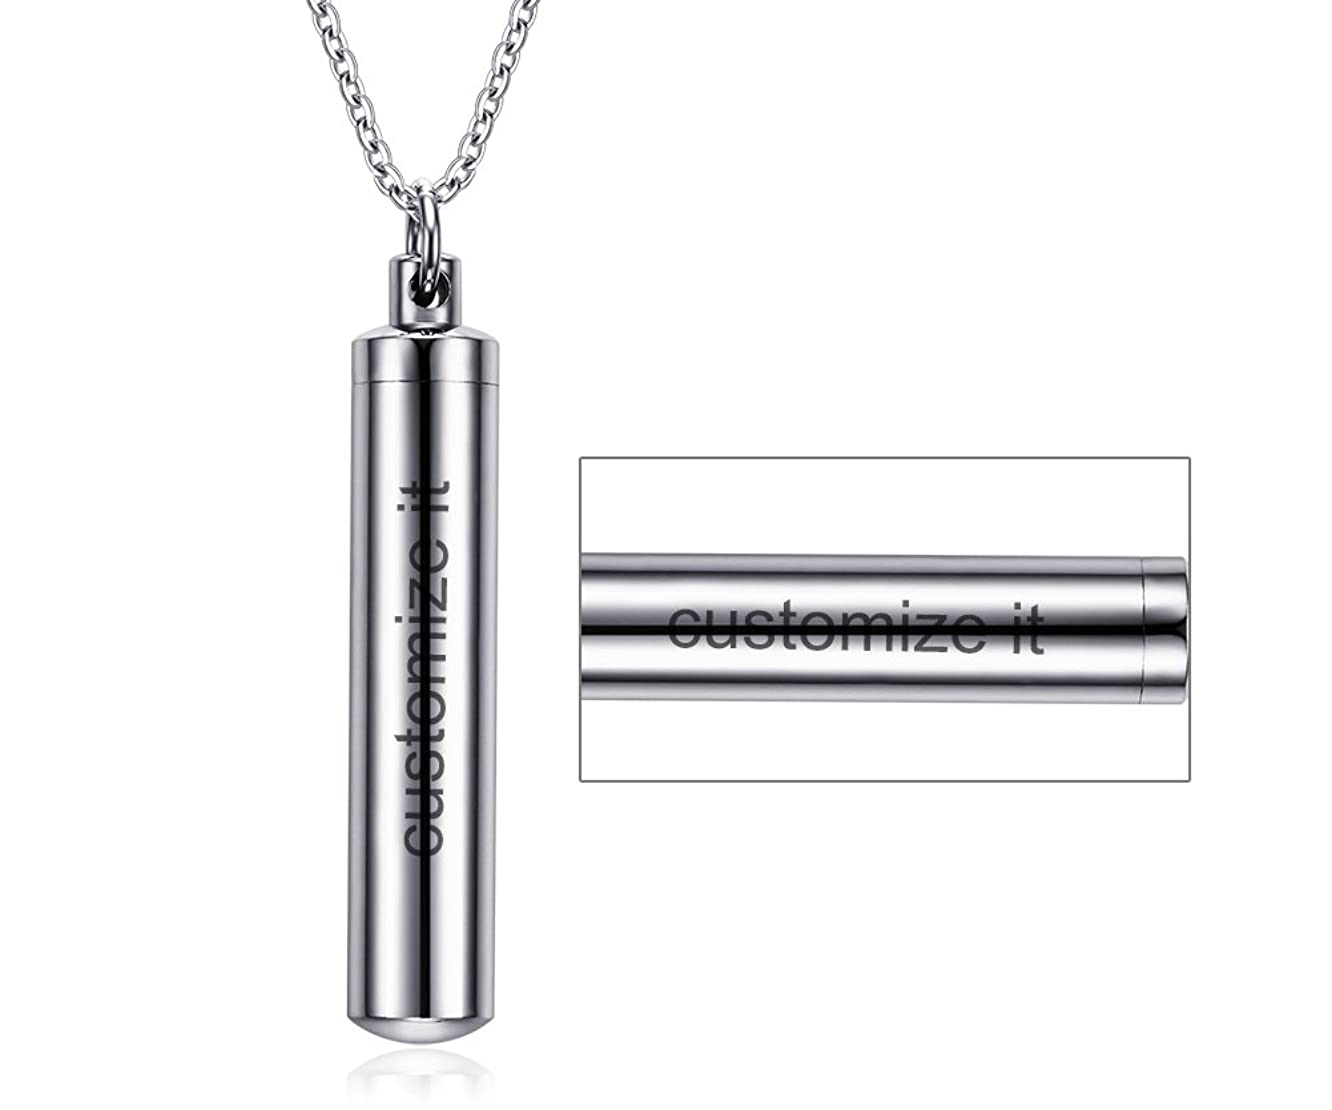 Mealguet Jewelry Free-Engraving Personalized Stainless Steel Cylinder Remembrance Memorial Ash Cremation Urn Pendant Necklace